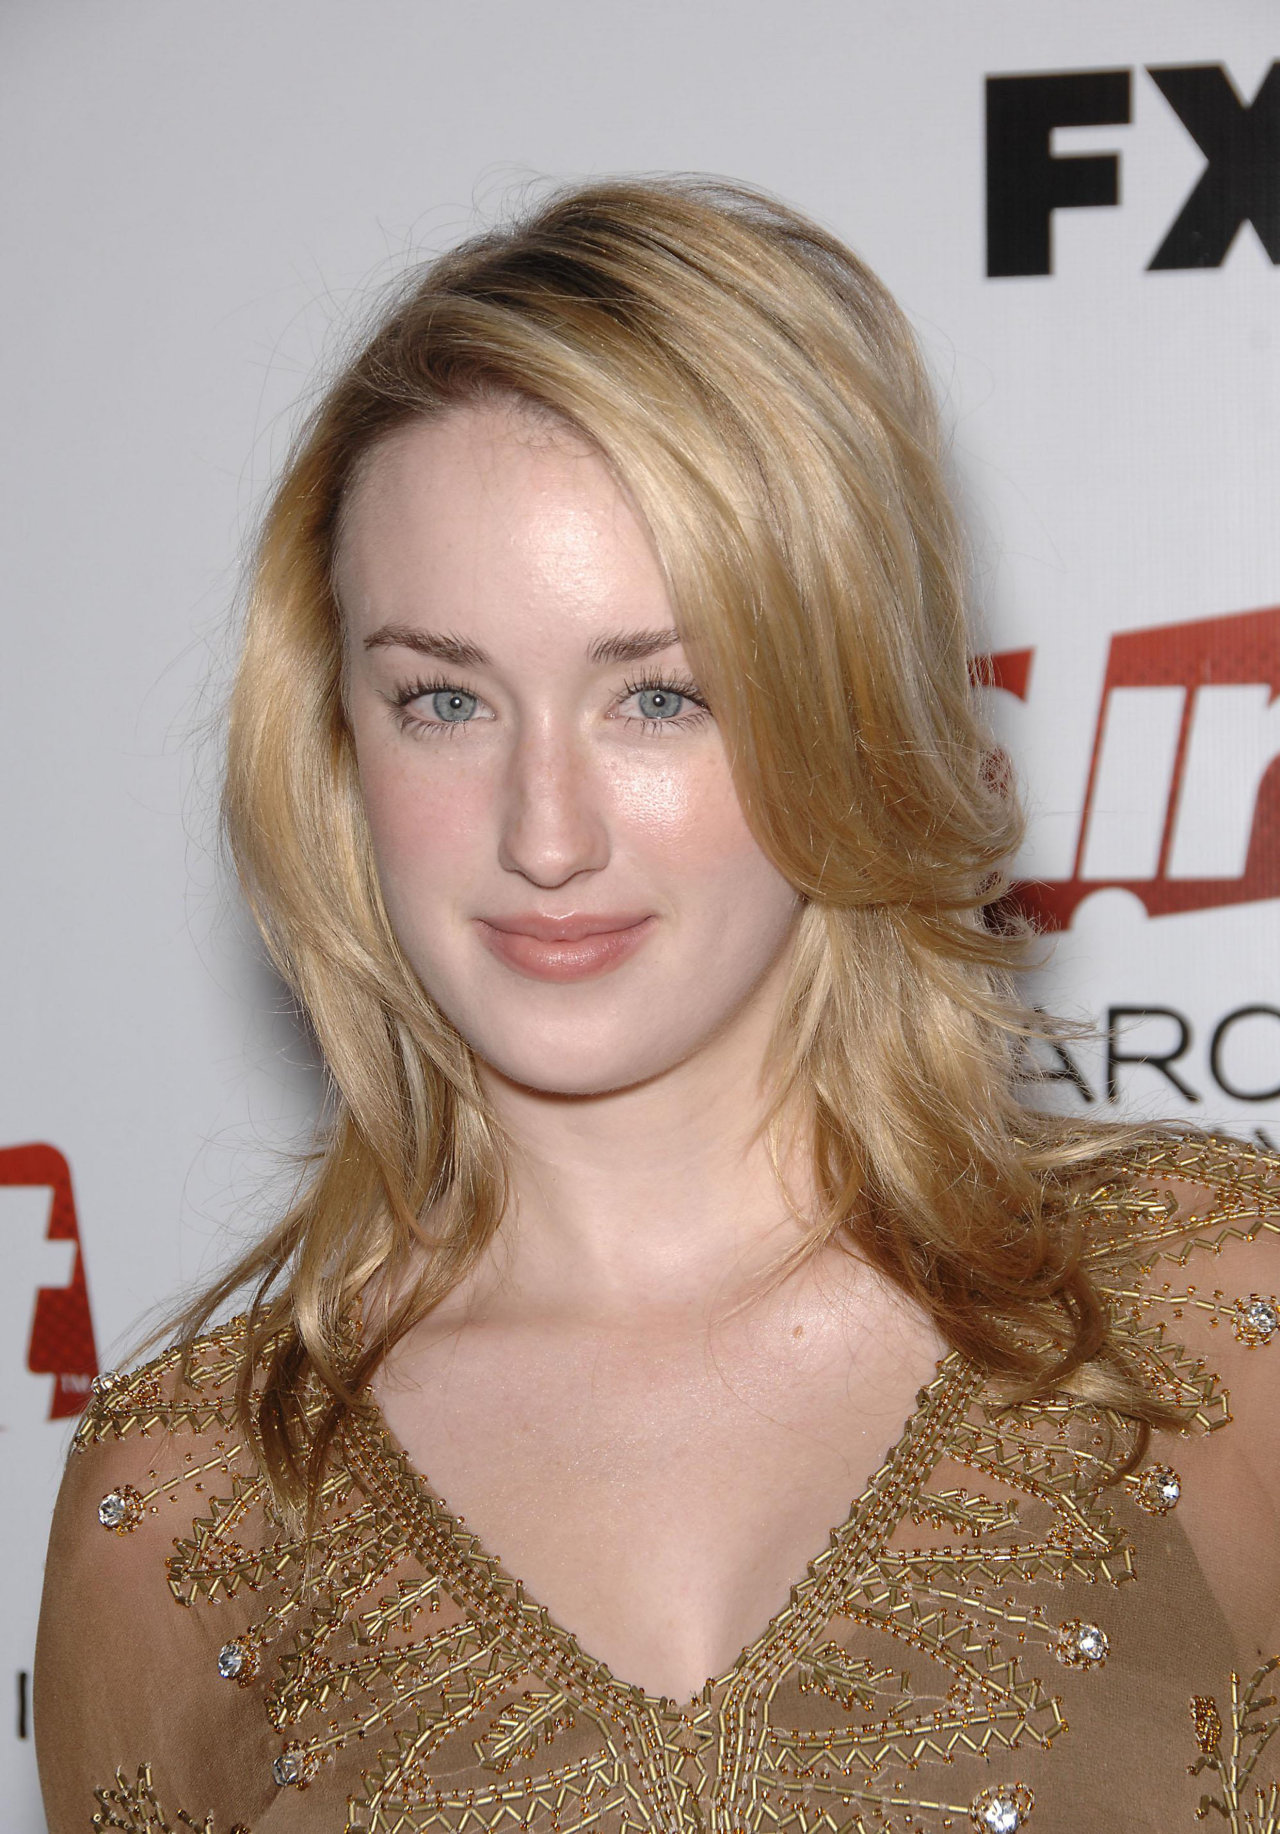 Pictures Ashley Johnson nudes (43 photo), Tits, Fappening, Boobs, cleavage 2017